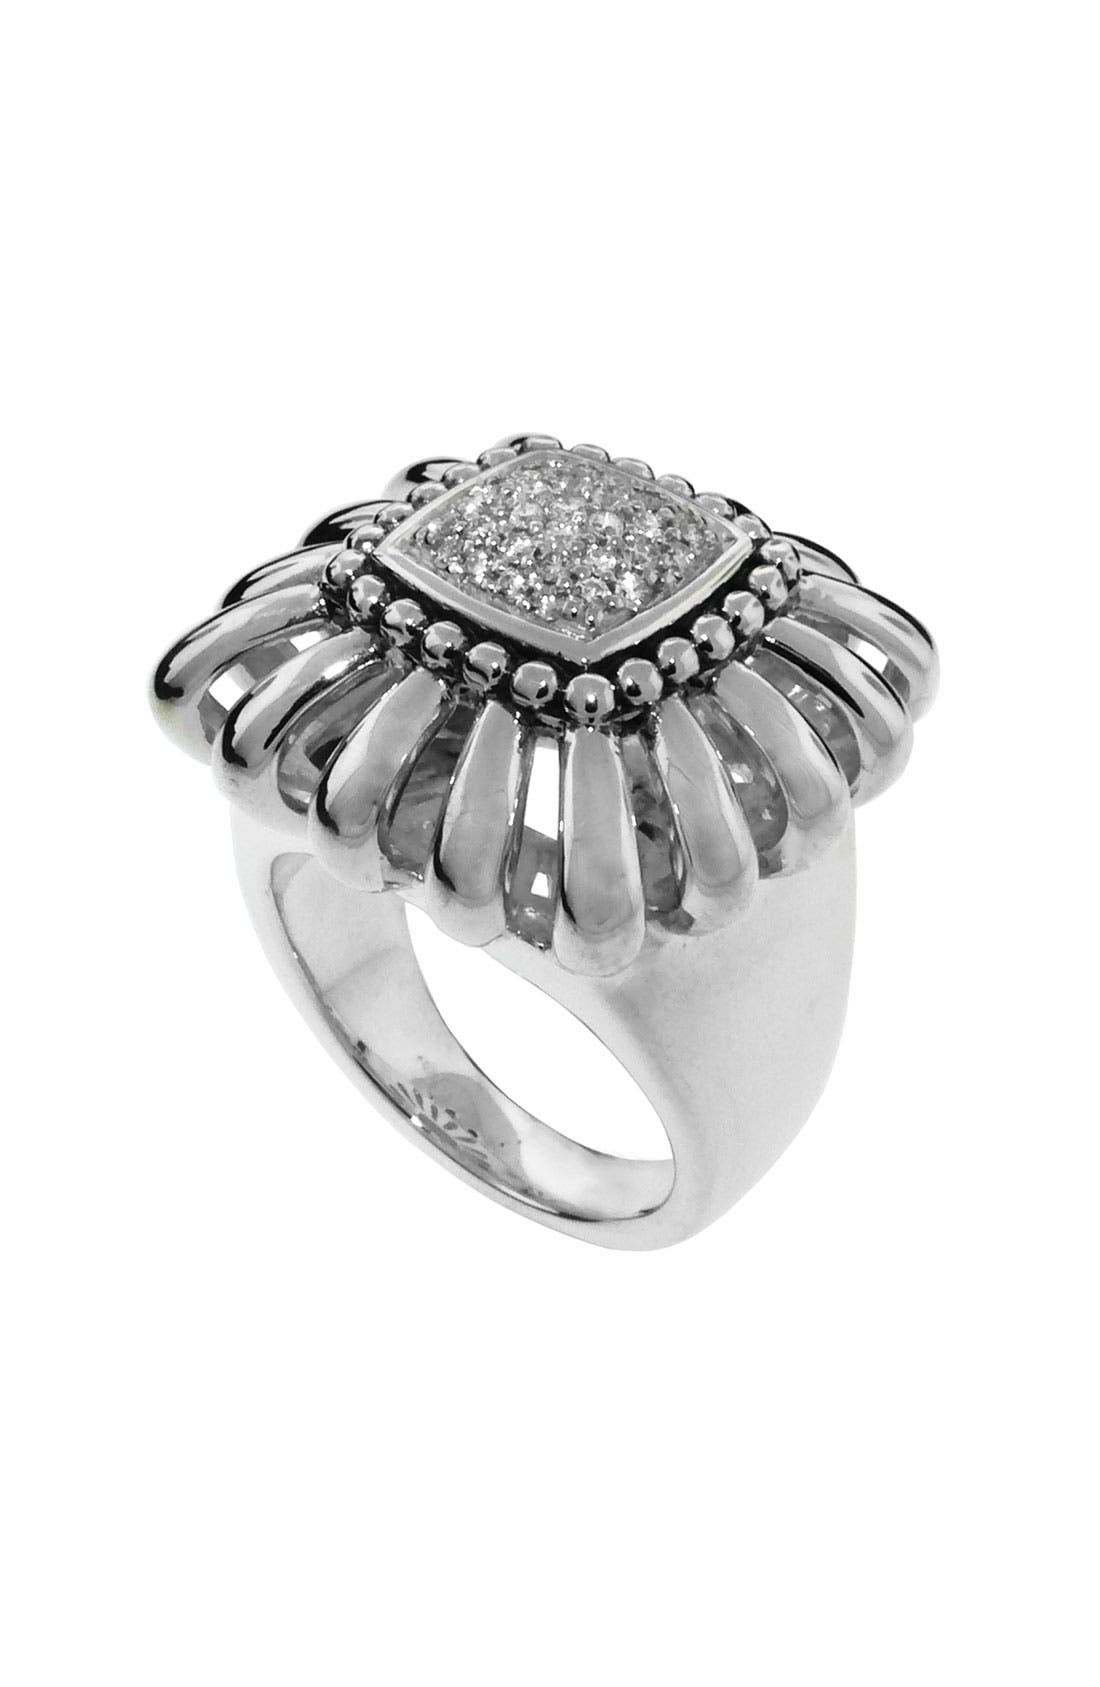 Main Image - LAGOS 'Prêt-à-Porter' Diamond Daisy Cocktail Ring